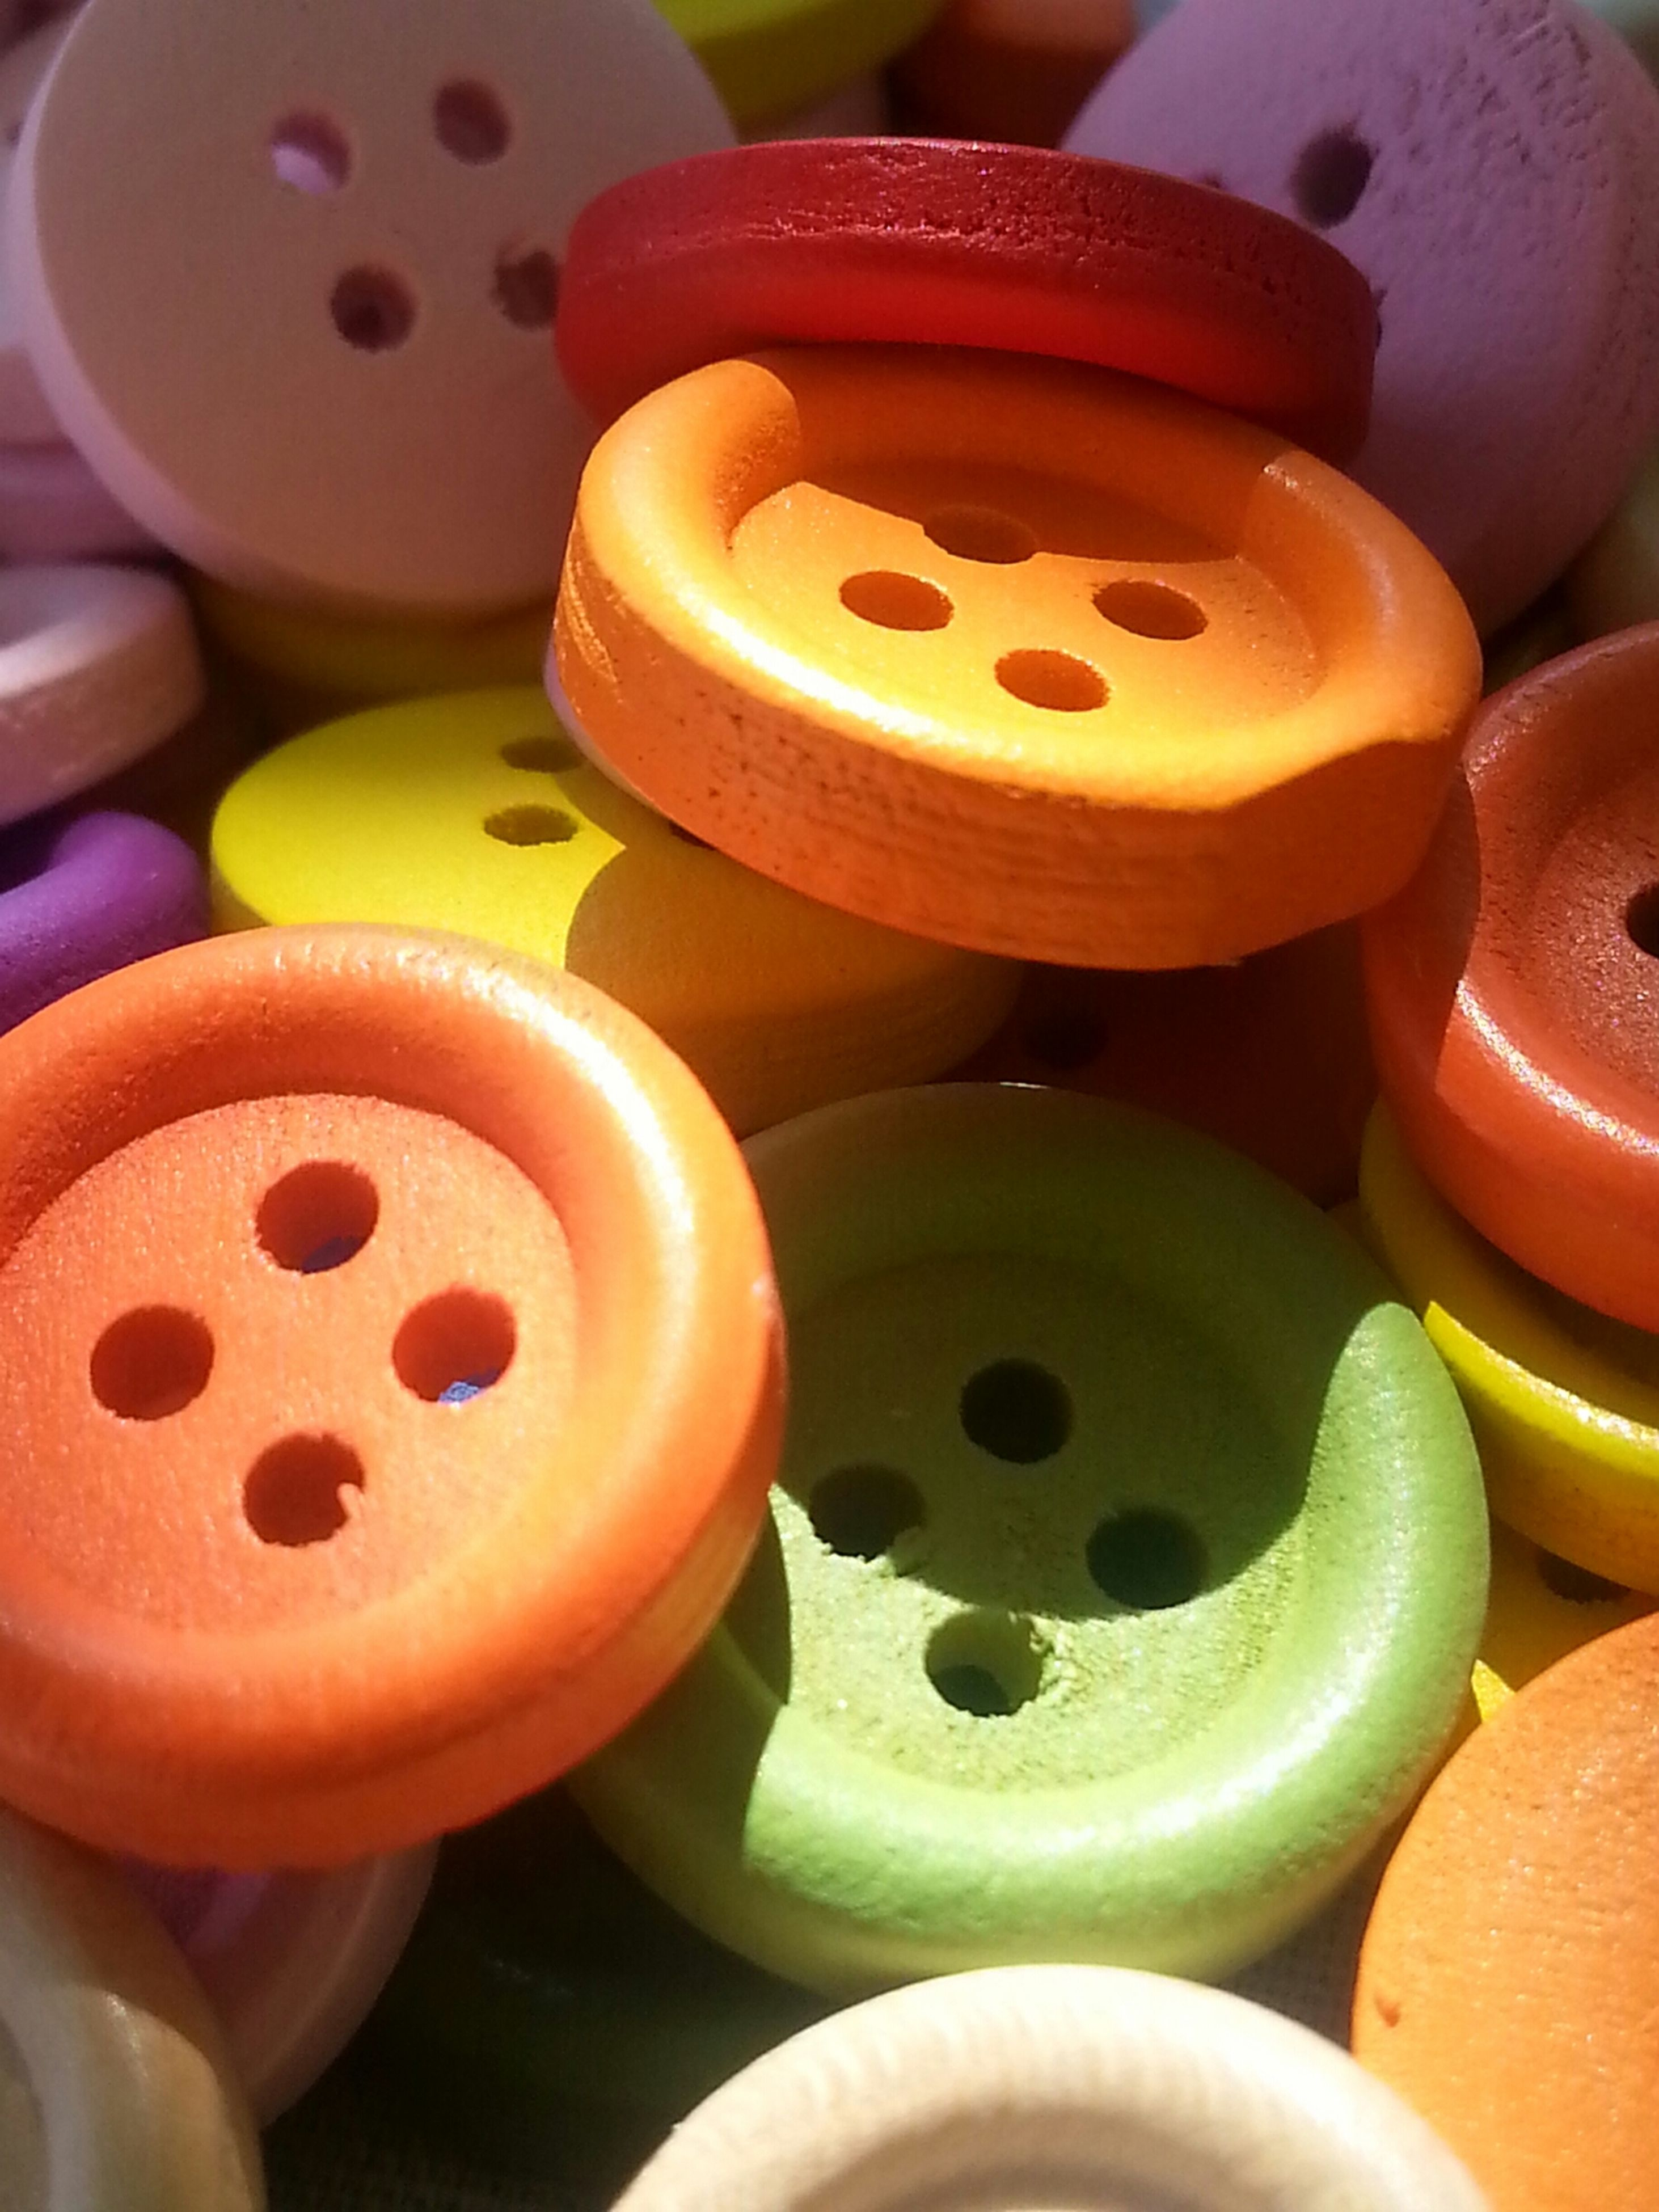 indoors, multi colored, large group of objects, variation, abundance, still life, close-up, choice, colorful, circle, high angle view, toy, red, arrangement, no people, childhood, collection, group of objects, stack, plastic